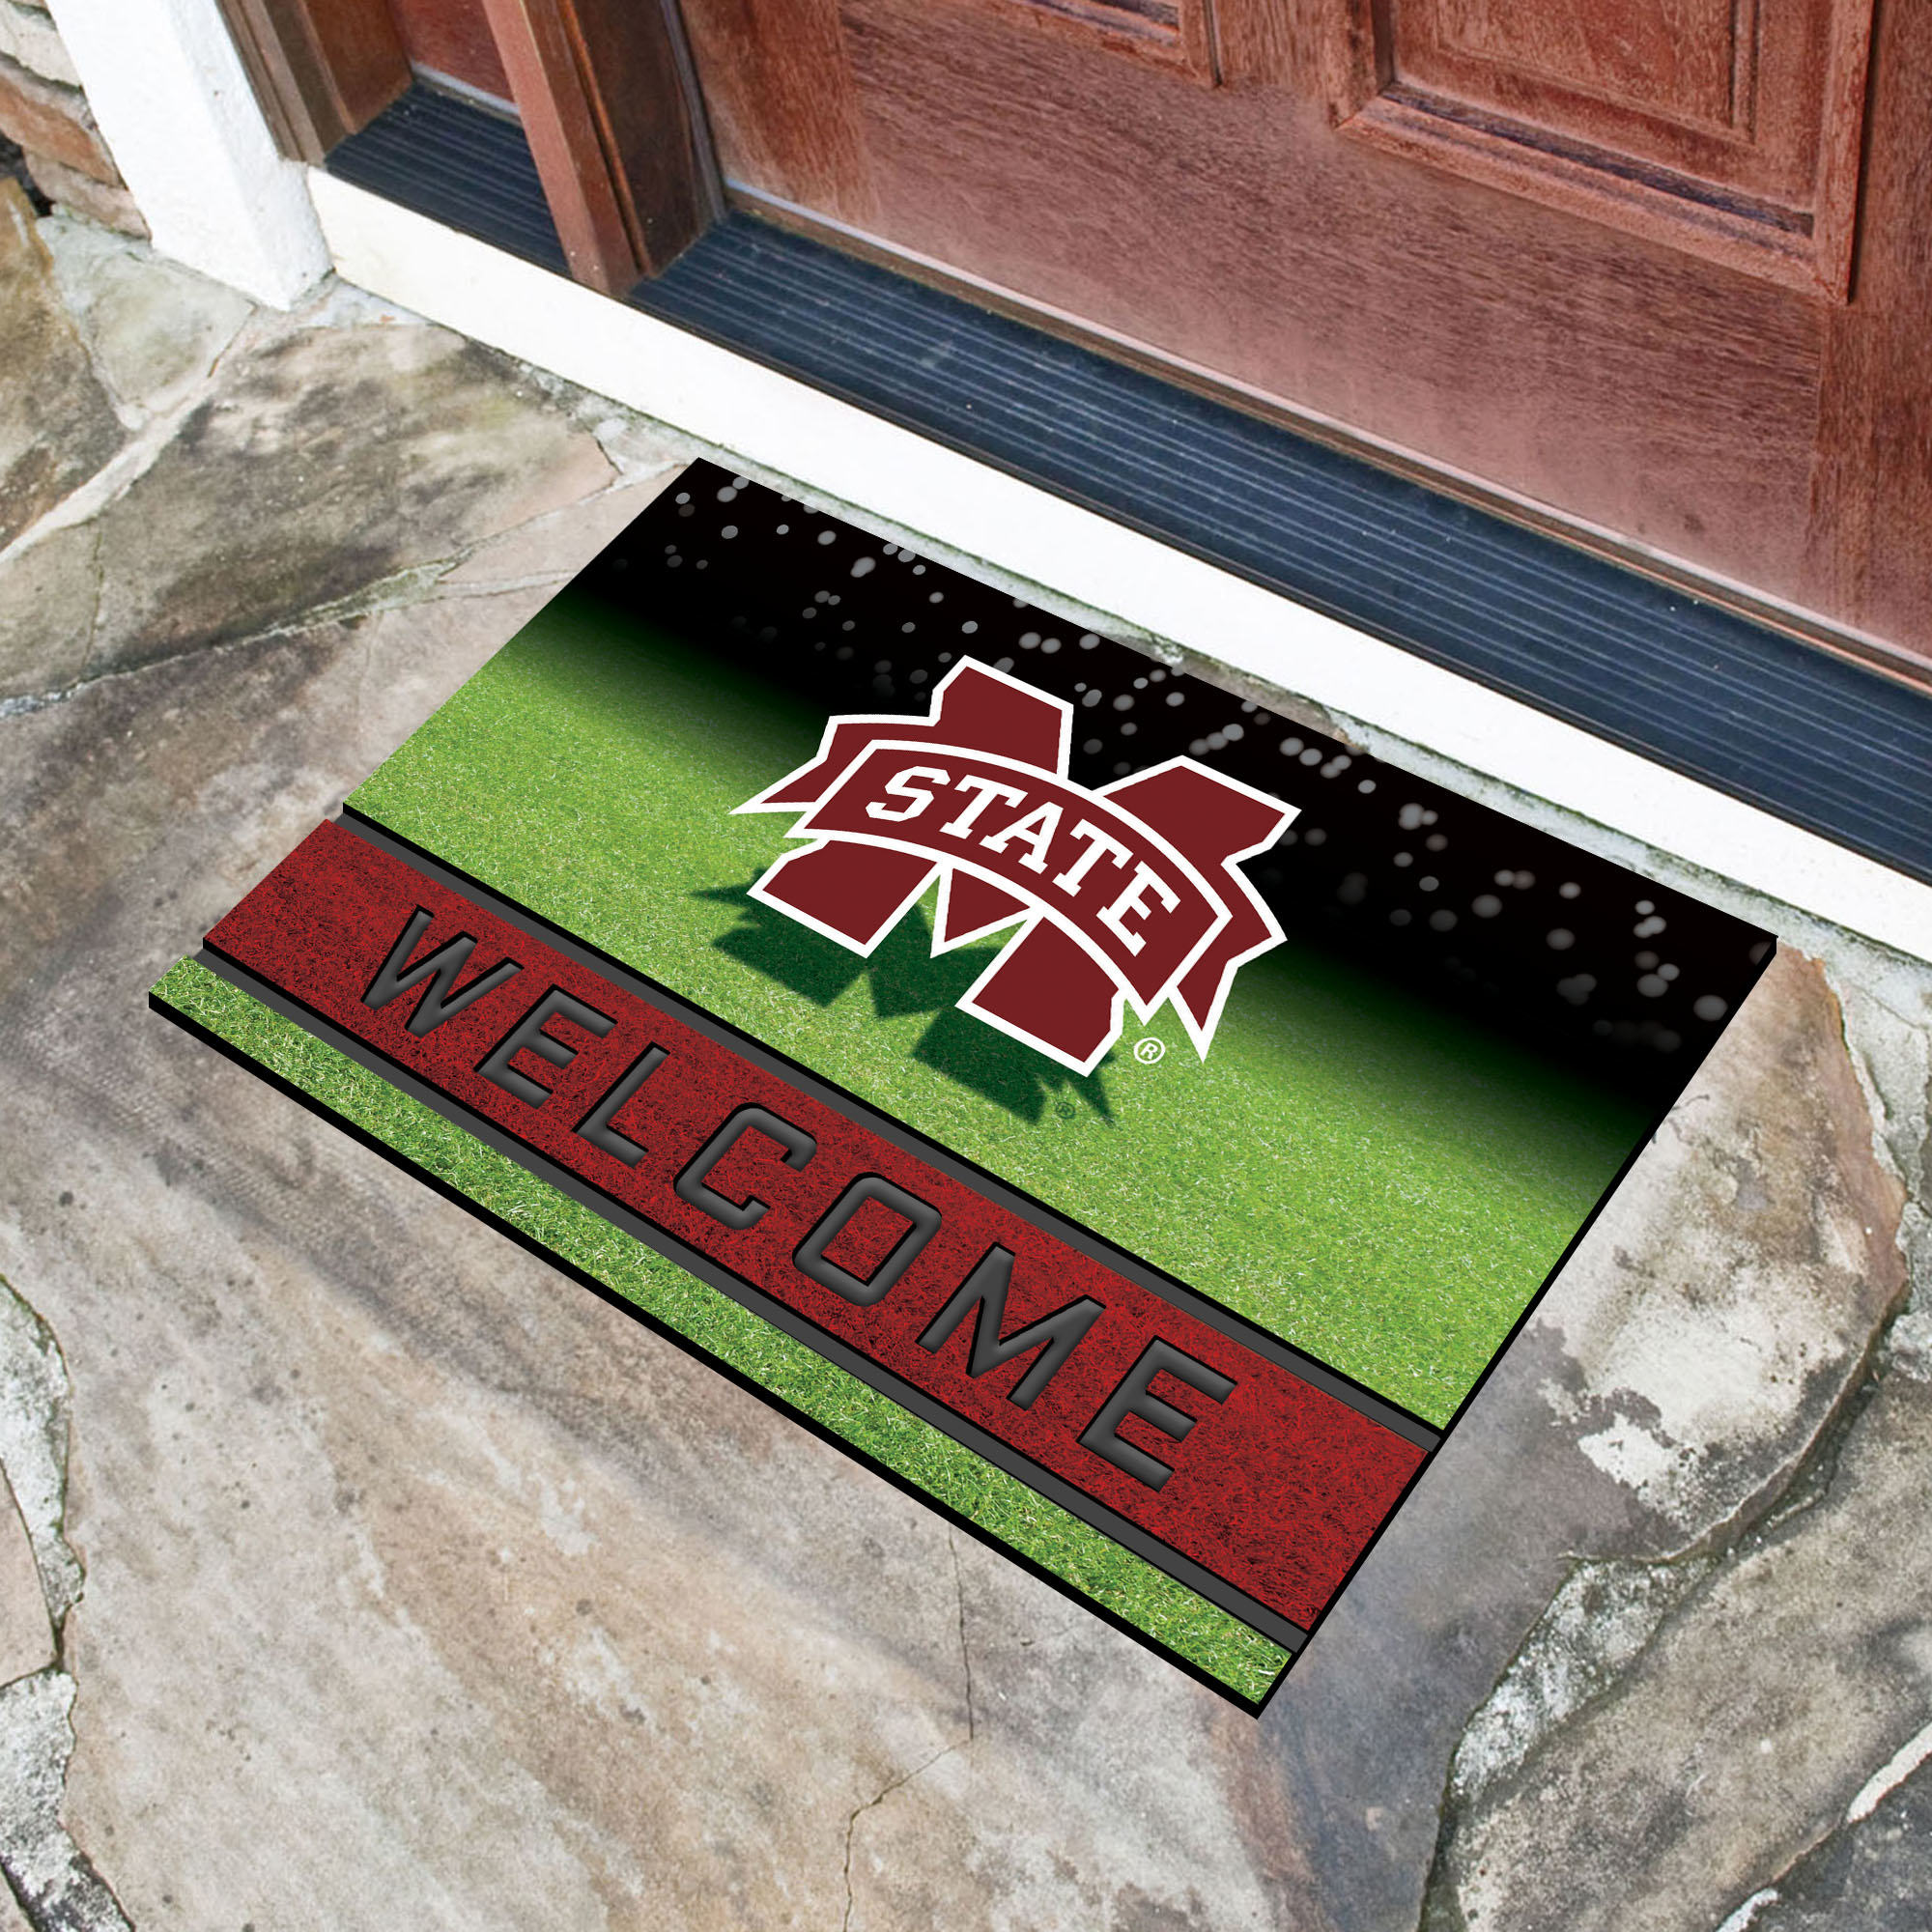 FANMATS 22525 Team Color Crumb Rubber Mississippi State University Door Mat